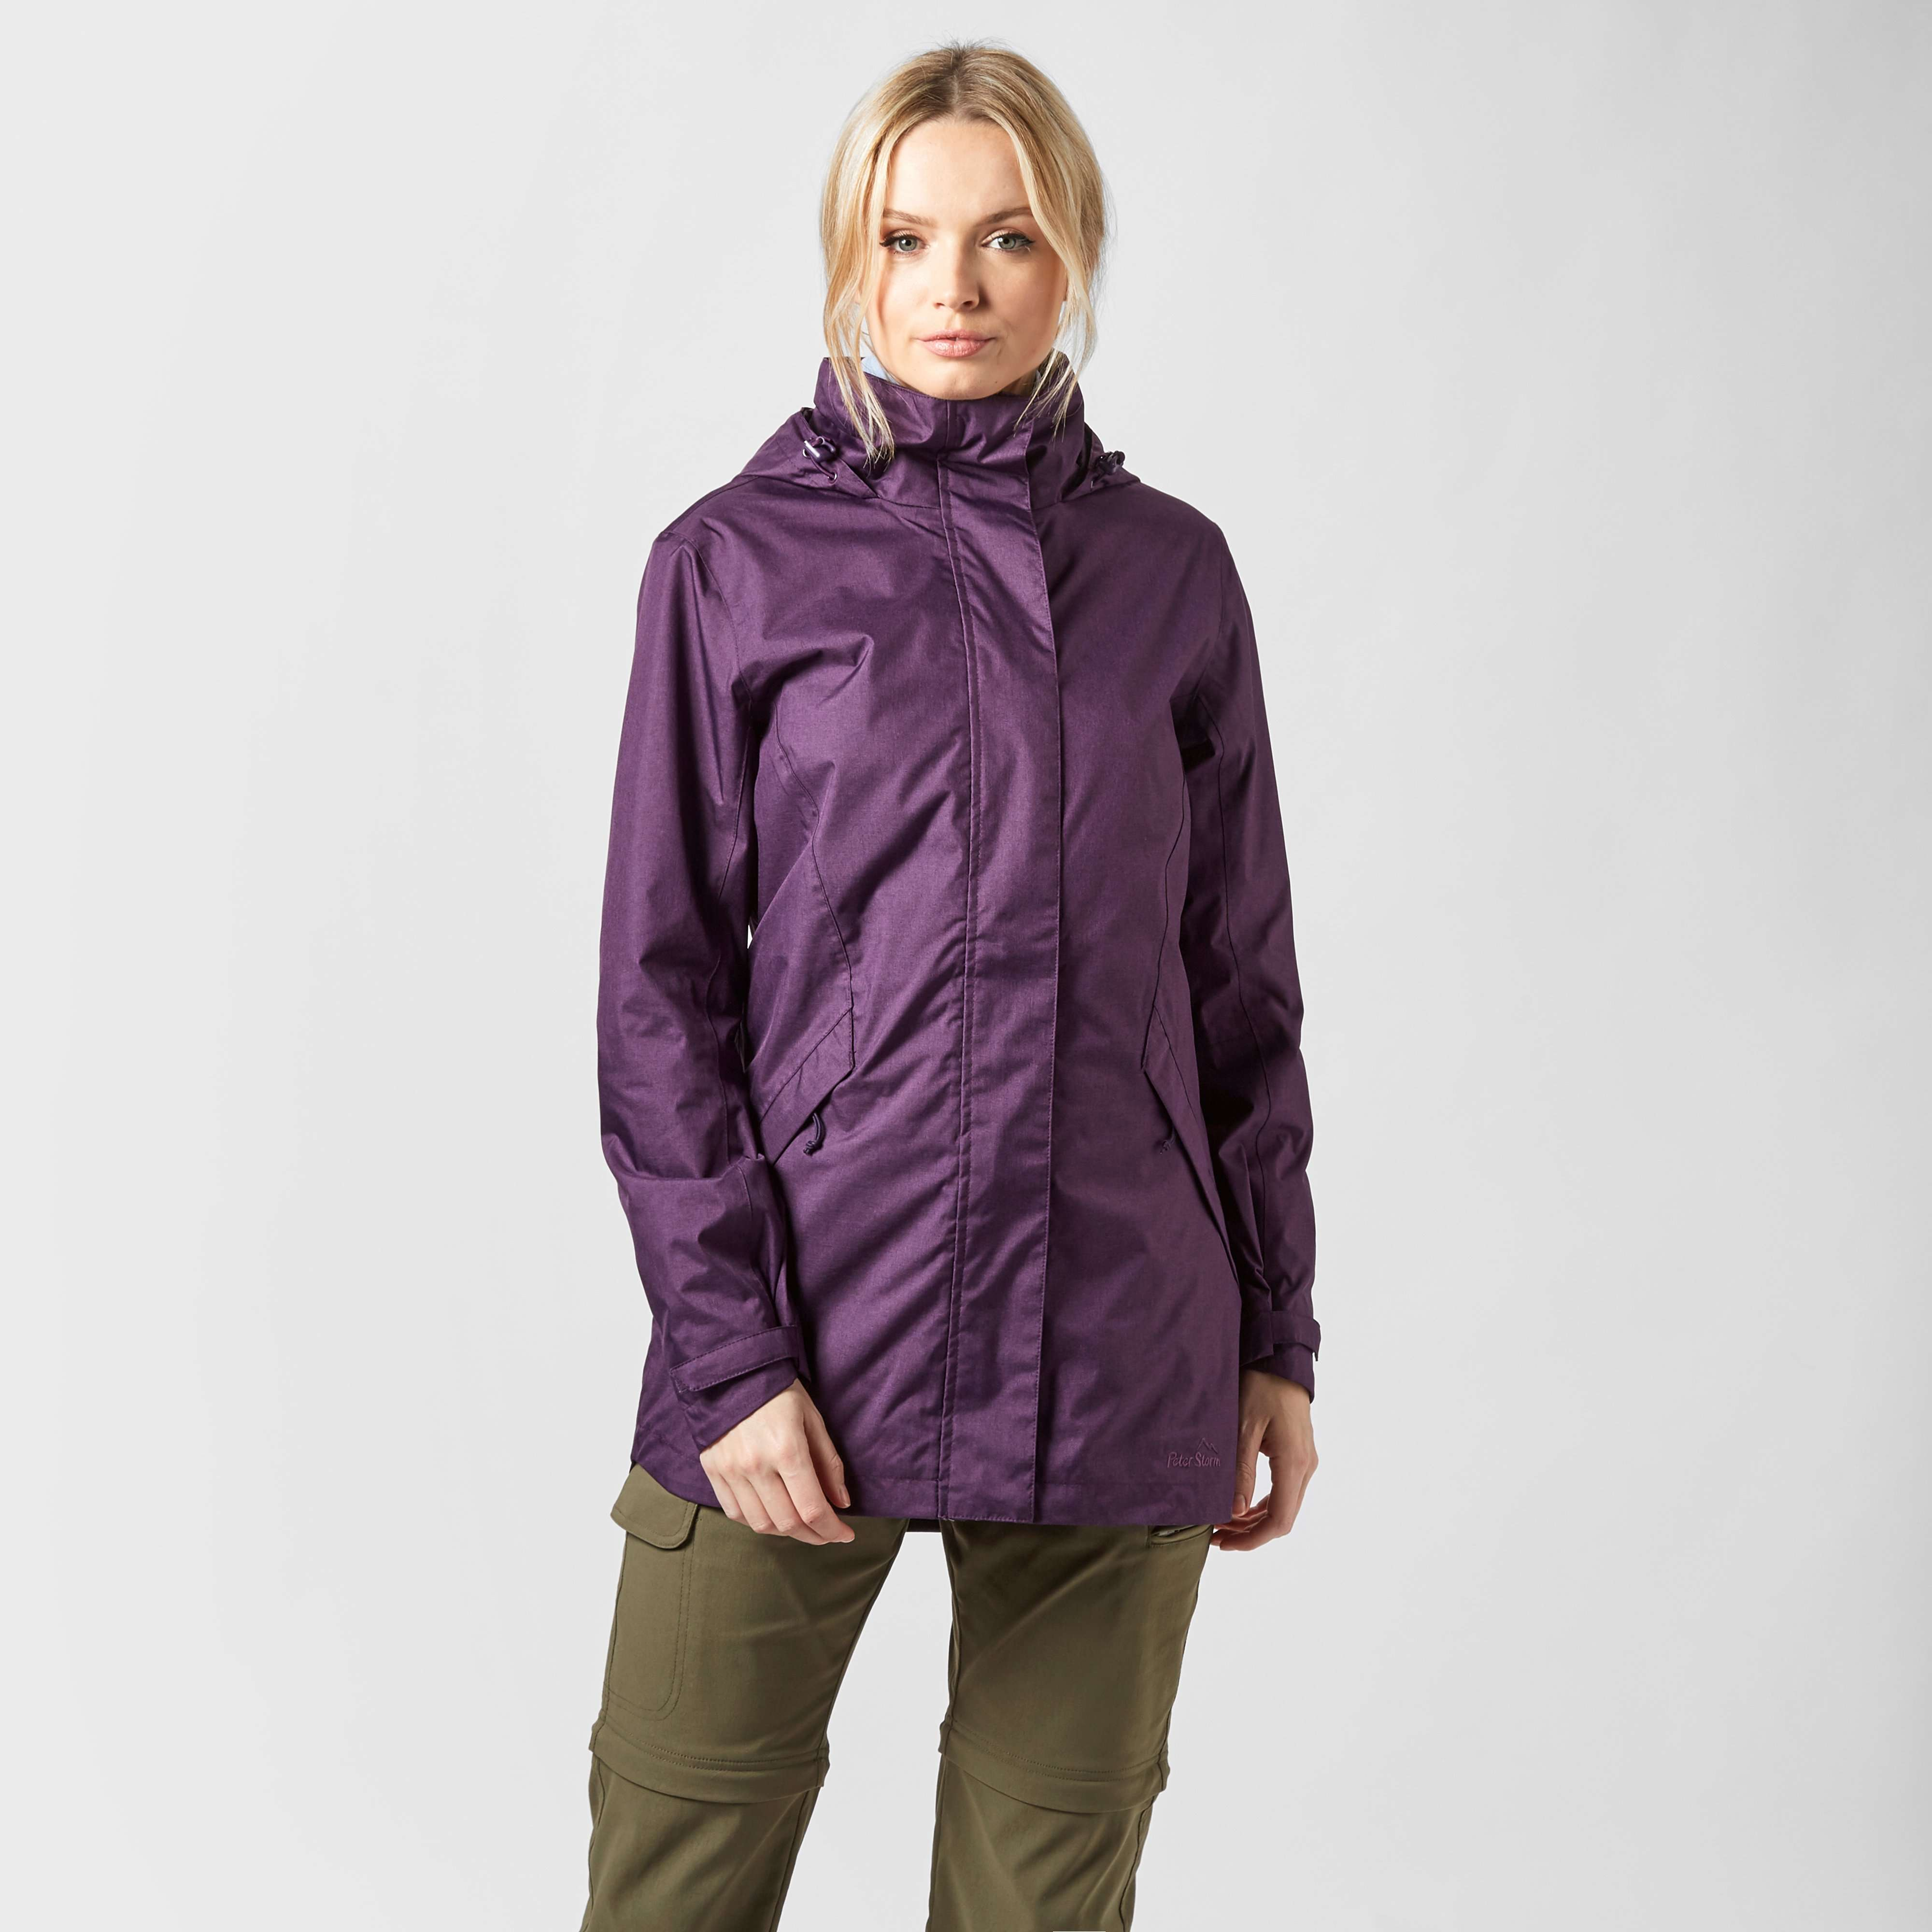 PETER STORM Women's Mistral Jacket